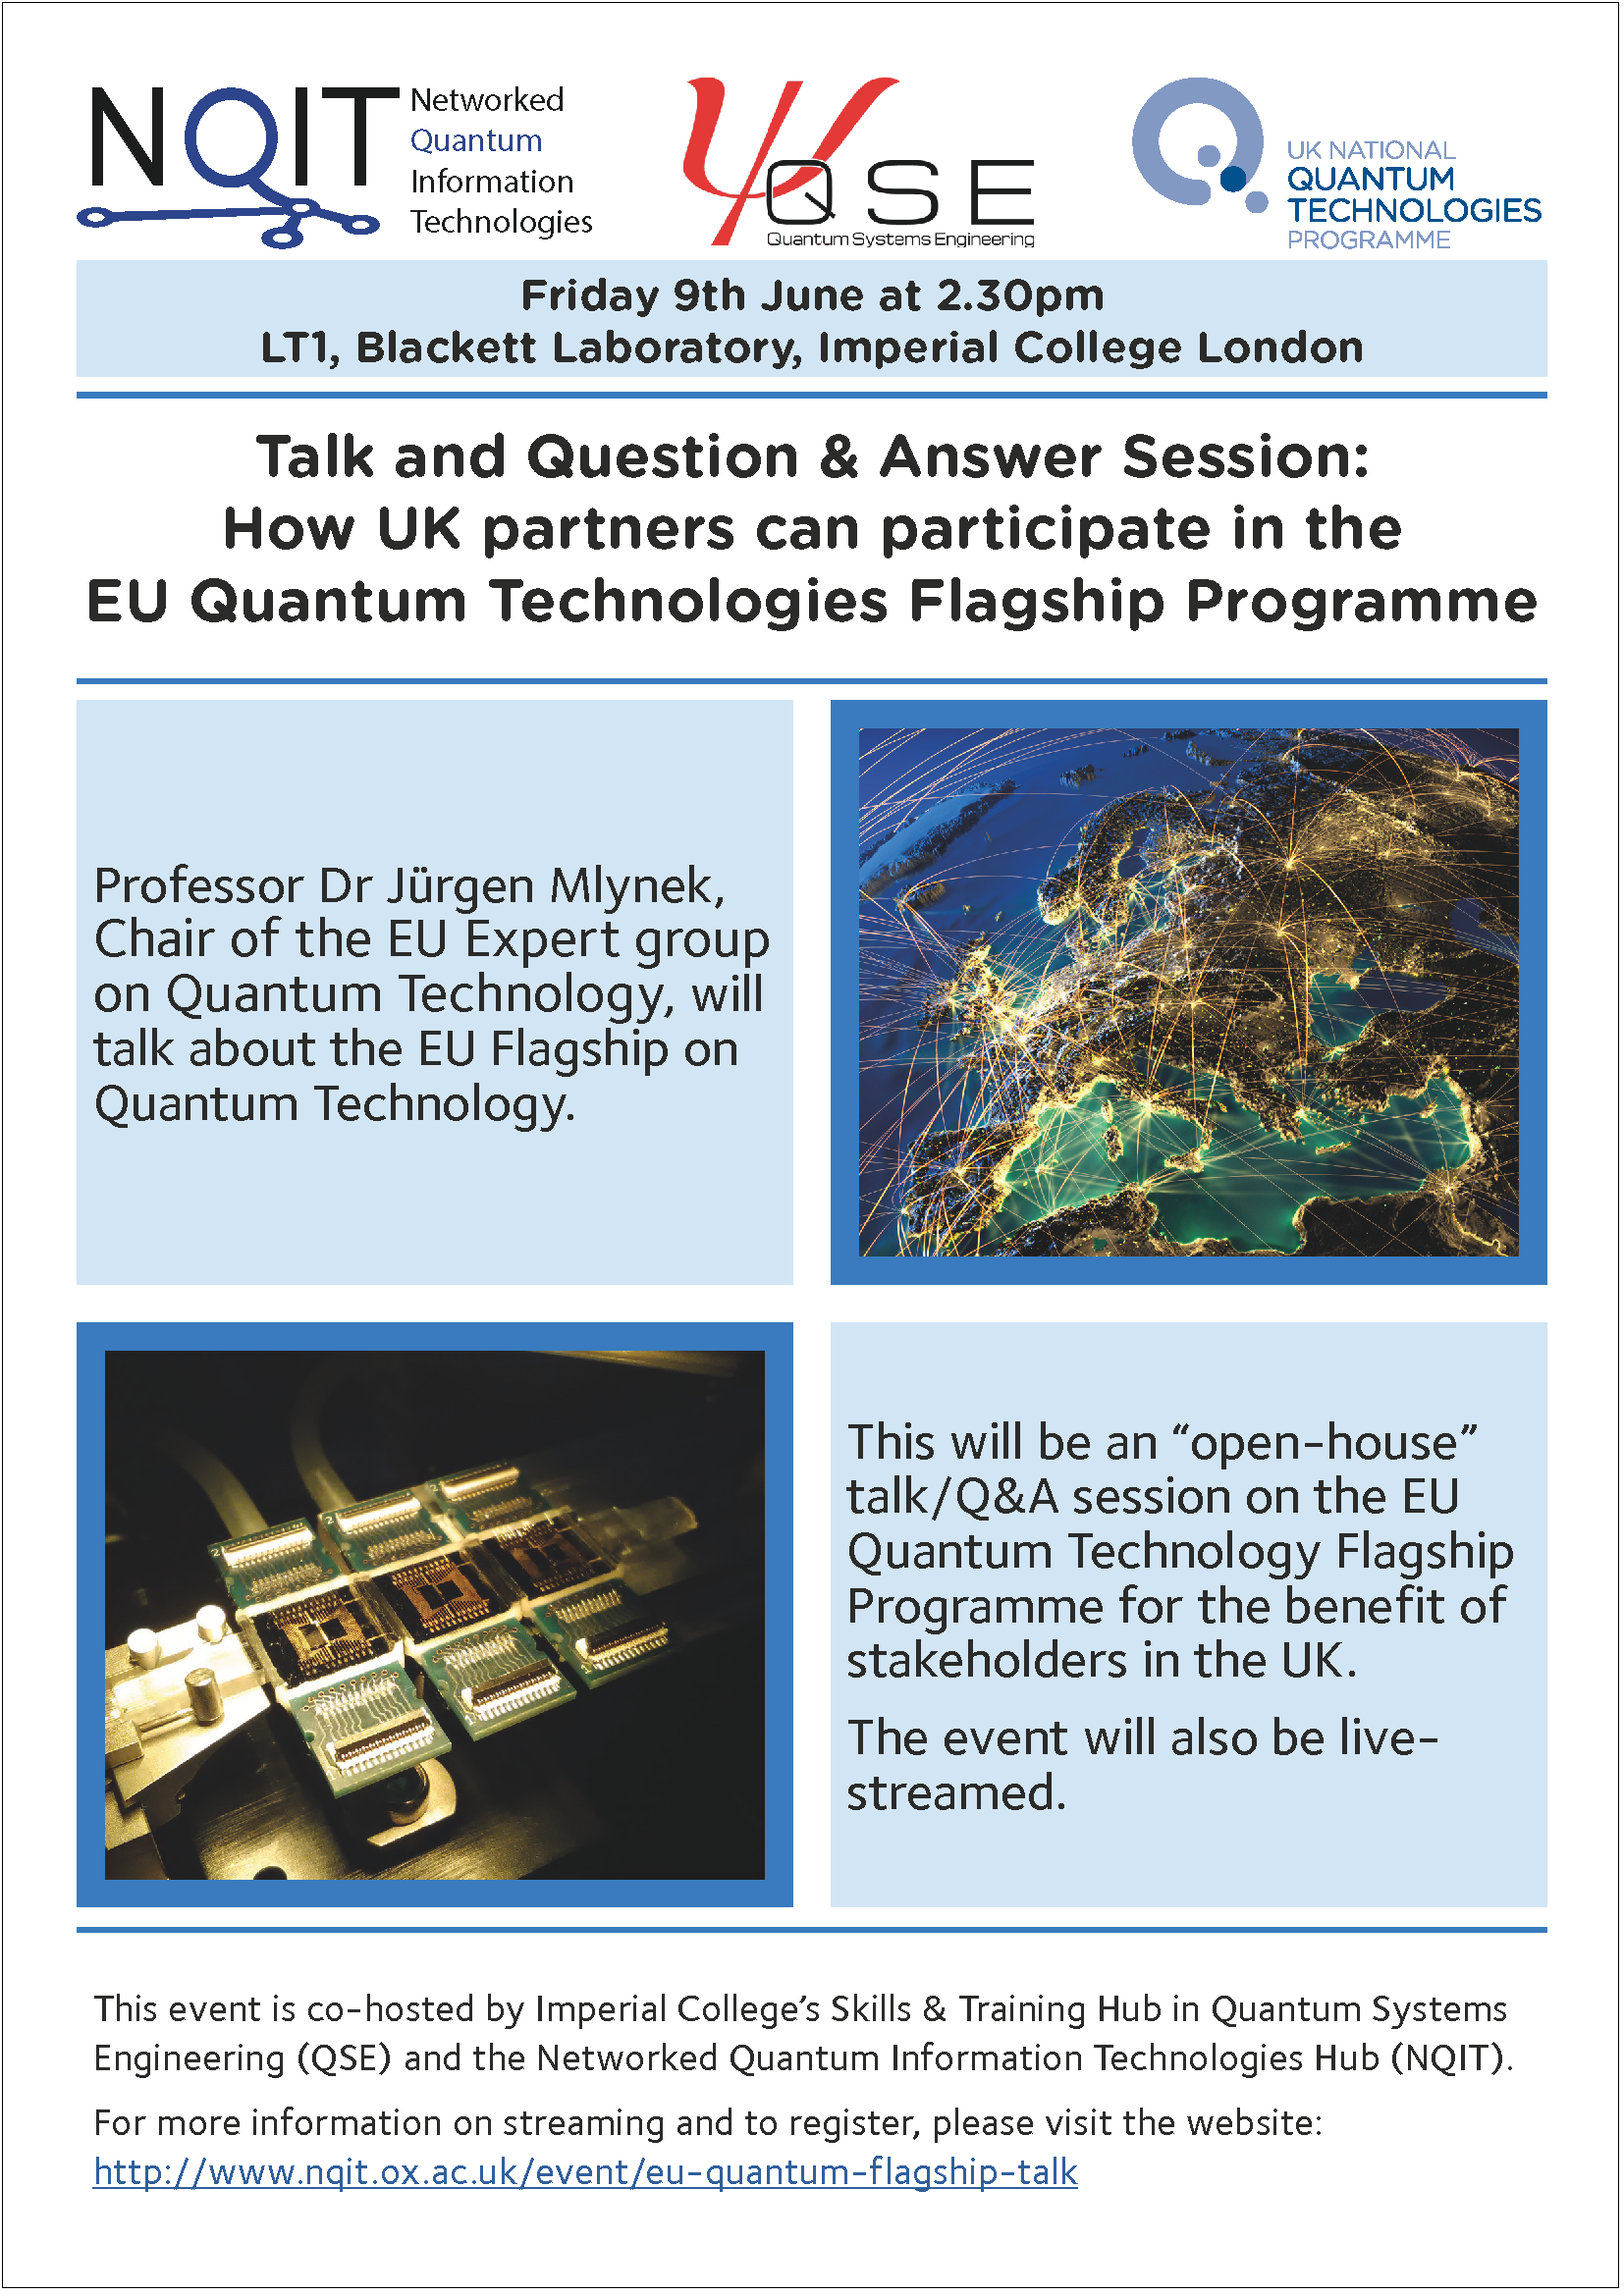 Question and Answer session: How UK partners can participate in the EU Quantum Technologies Flagship Programme